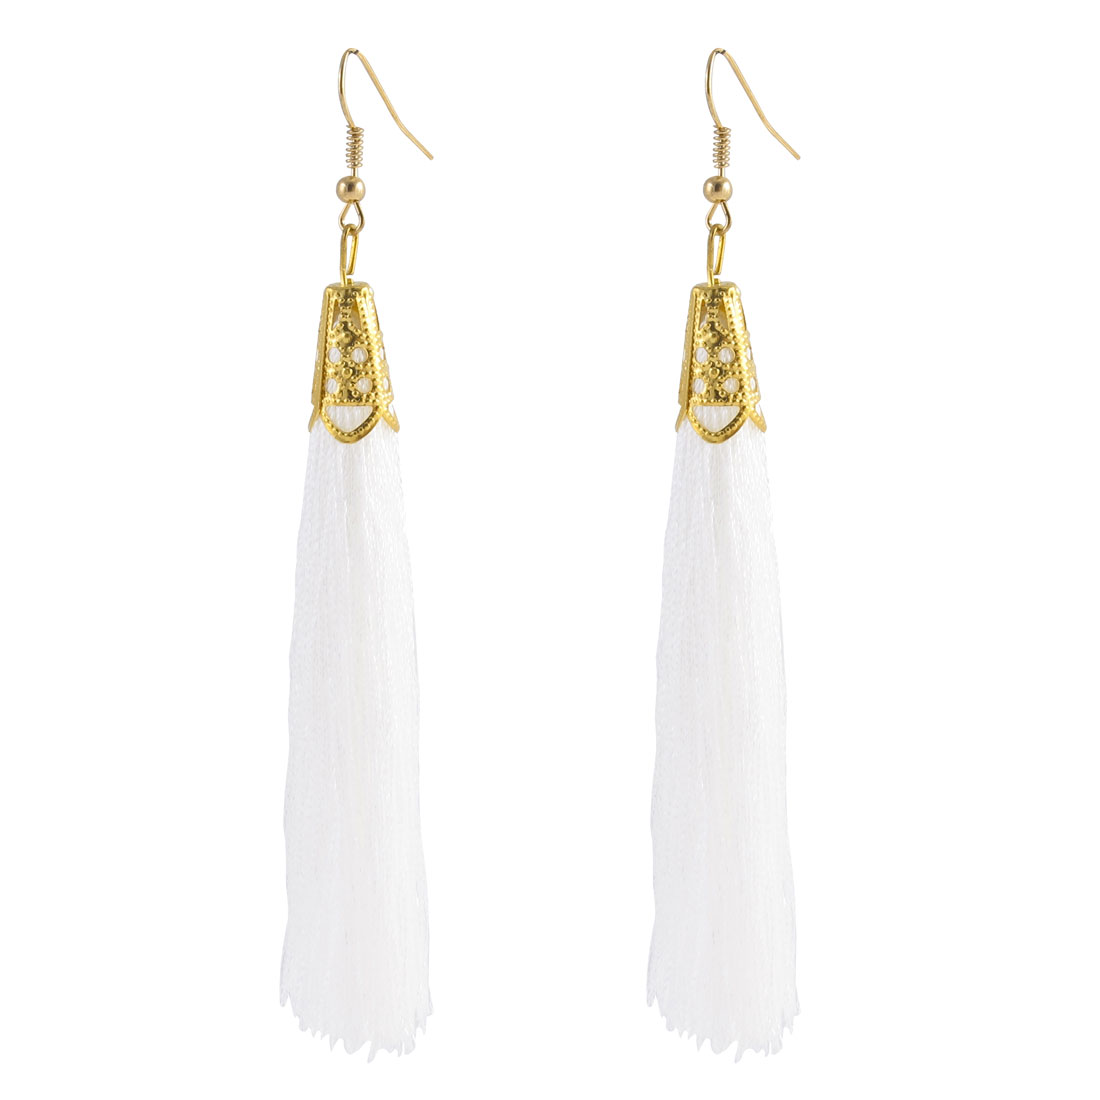 Fish Hook Long Nylon Tassel Drop Earrings Eardrop Gift 2 Pcs White